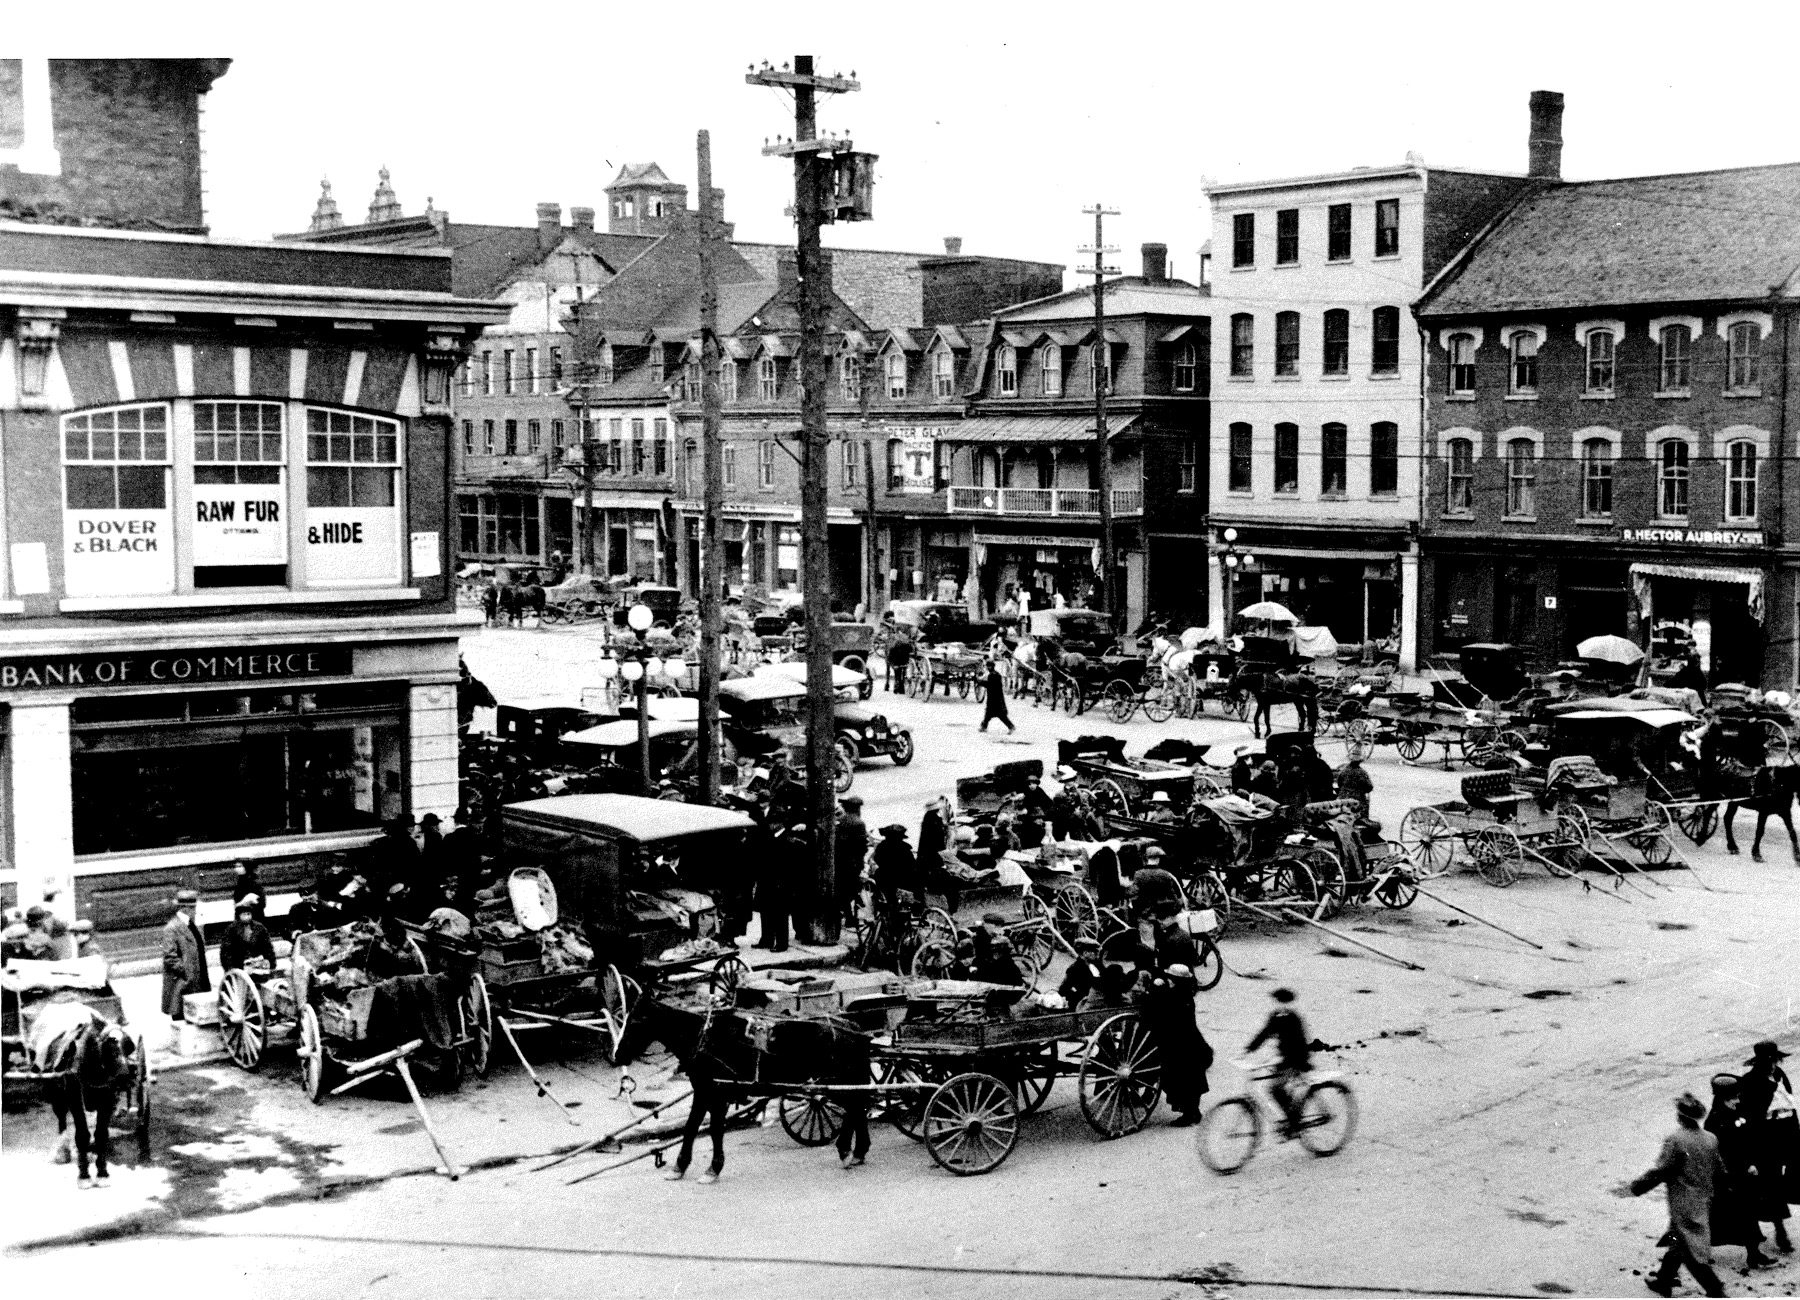 Corner of York and ByWard Market Square in the 1920s. Photo: courtesy of City of Ottawa Archives